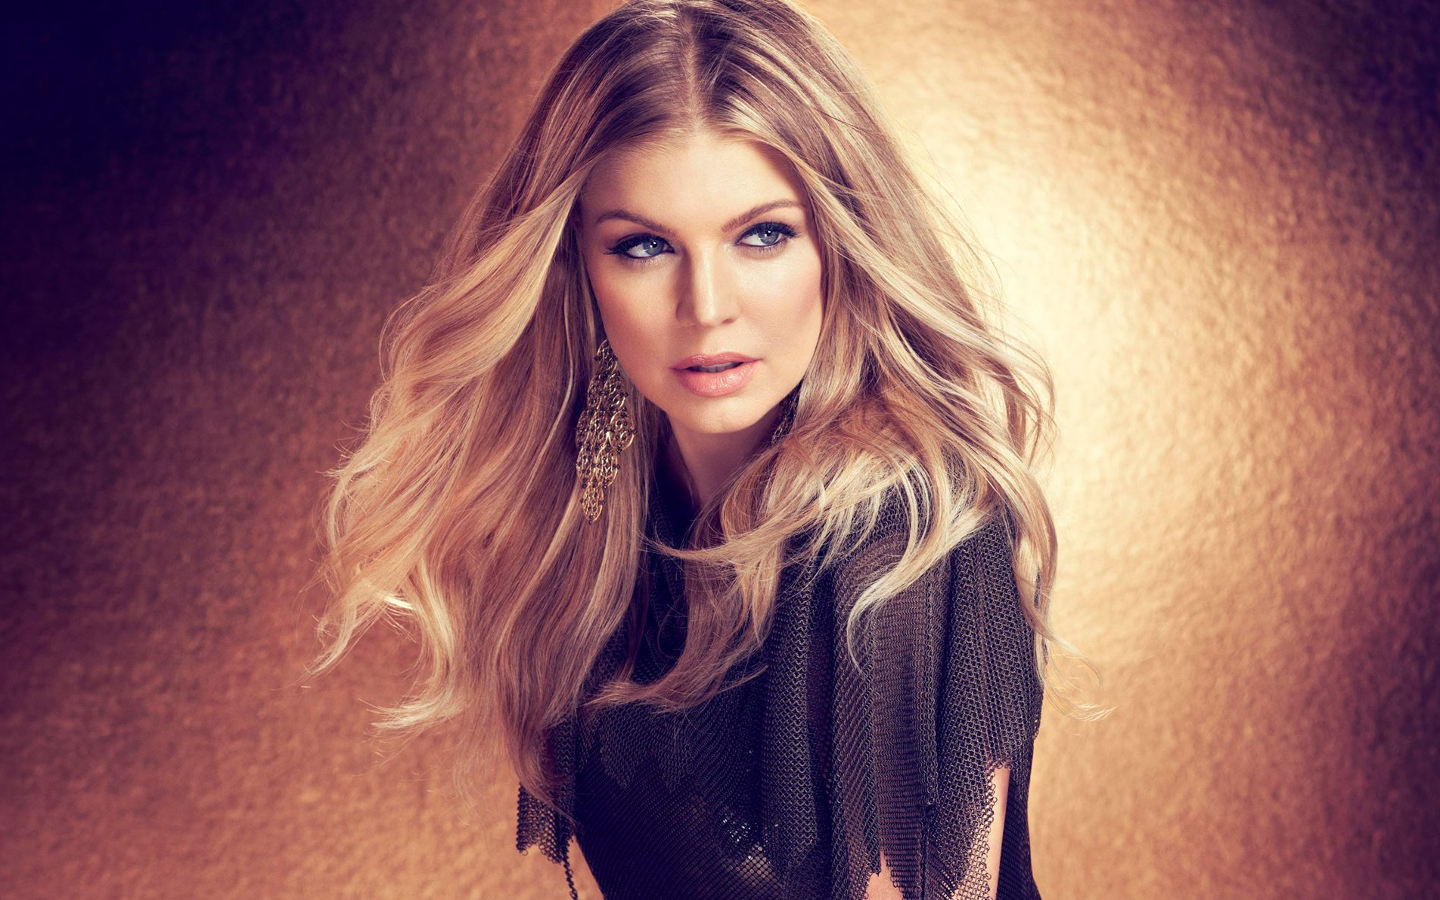 Fergie images Fergie glamorous HD wallpaper and background photos ...